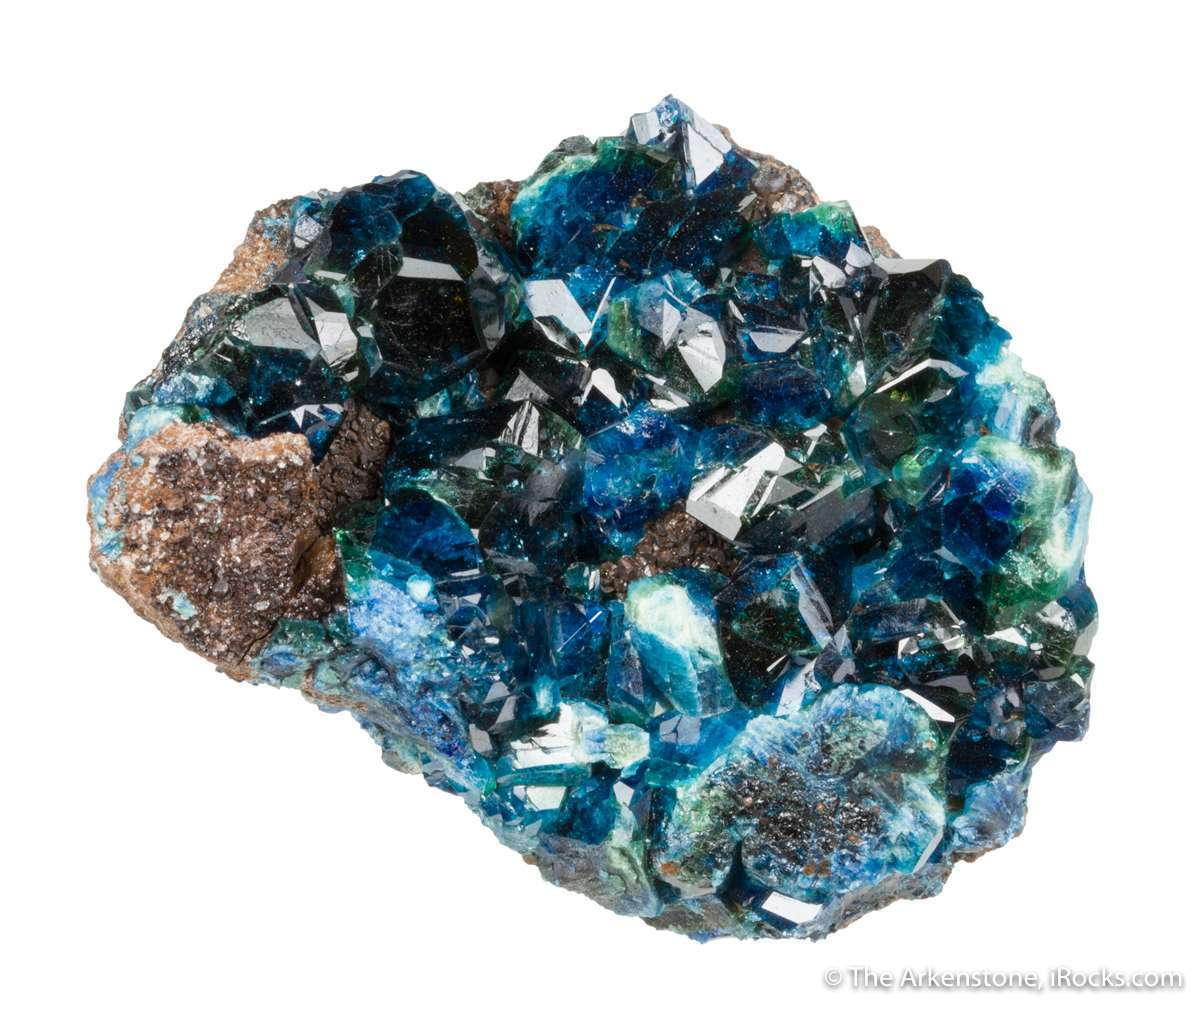 One beautiful specimens I seen years fat 3 dimensional crystals